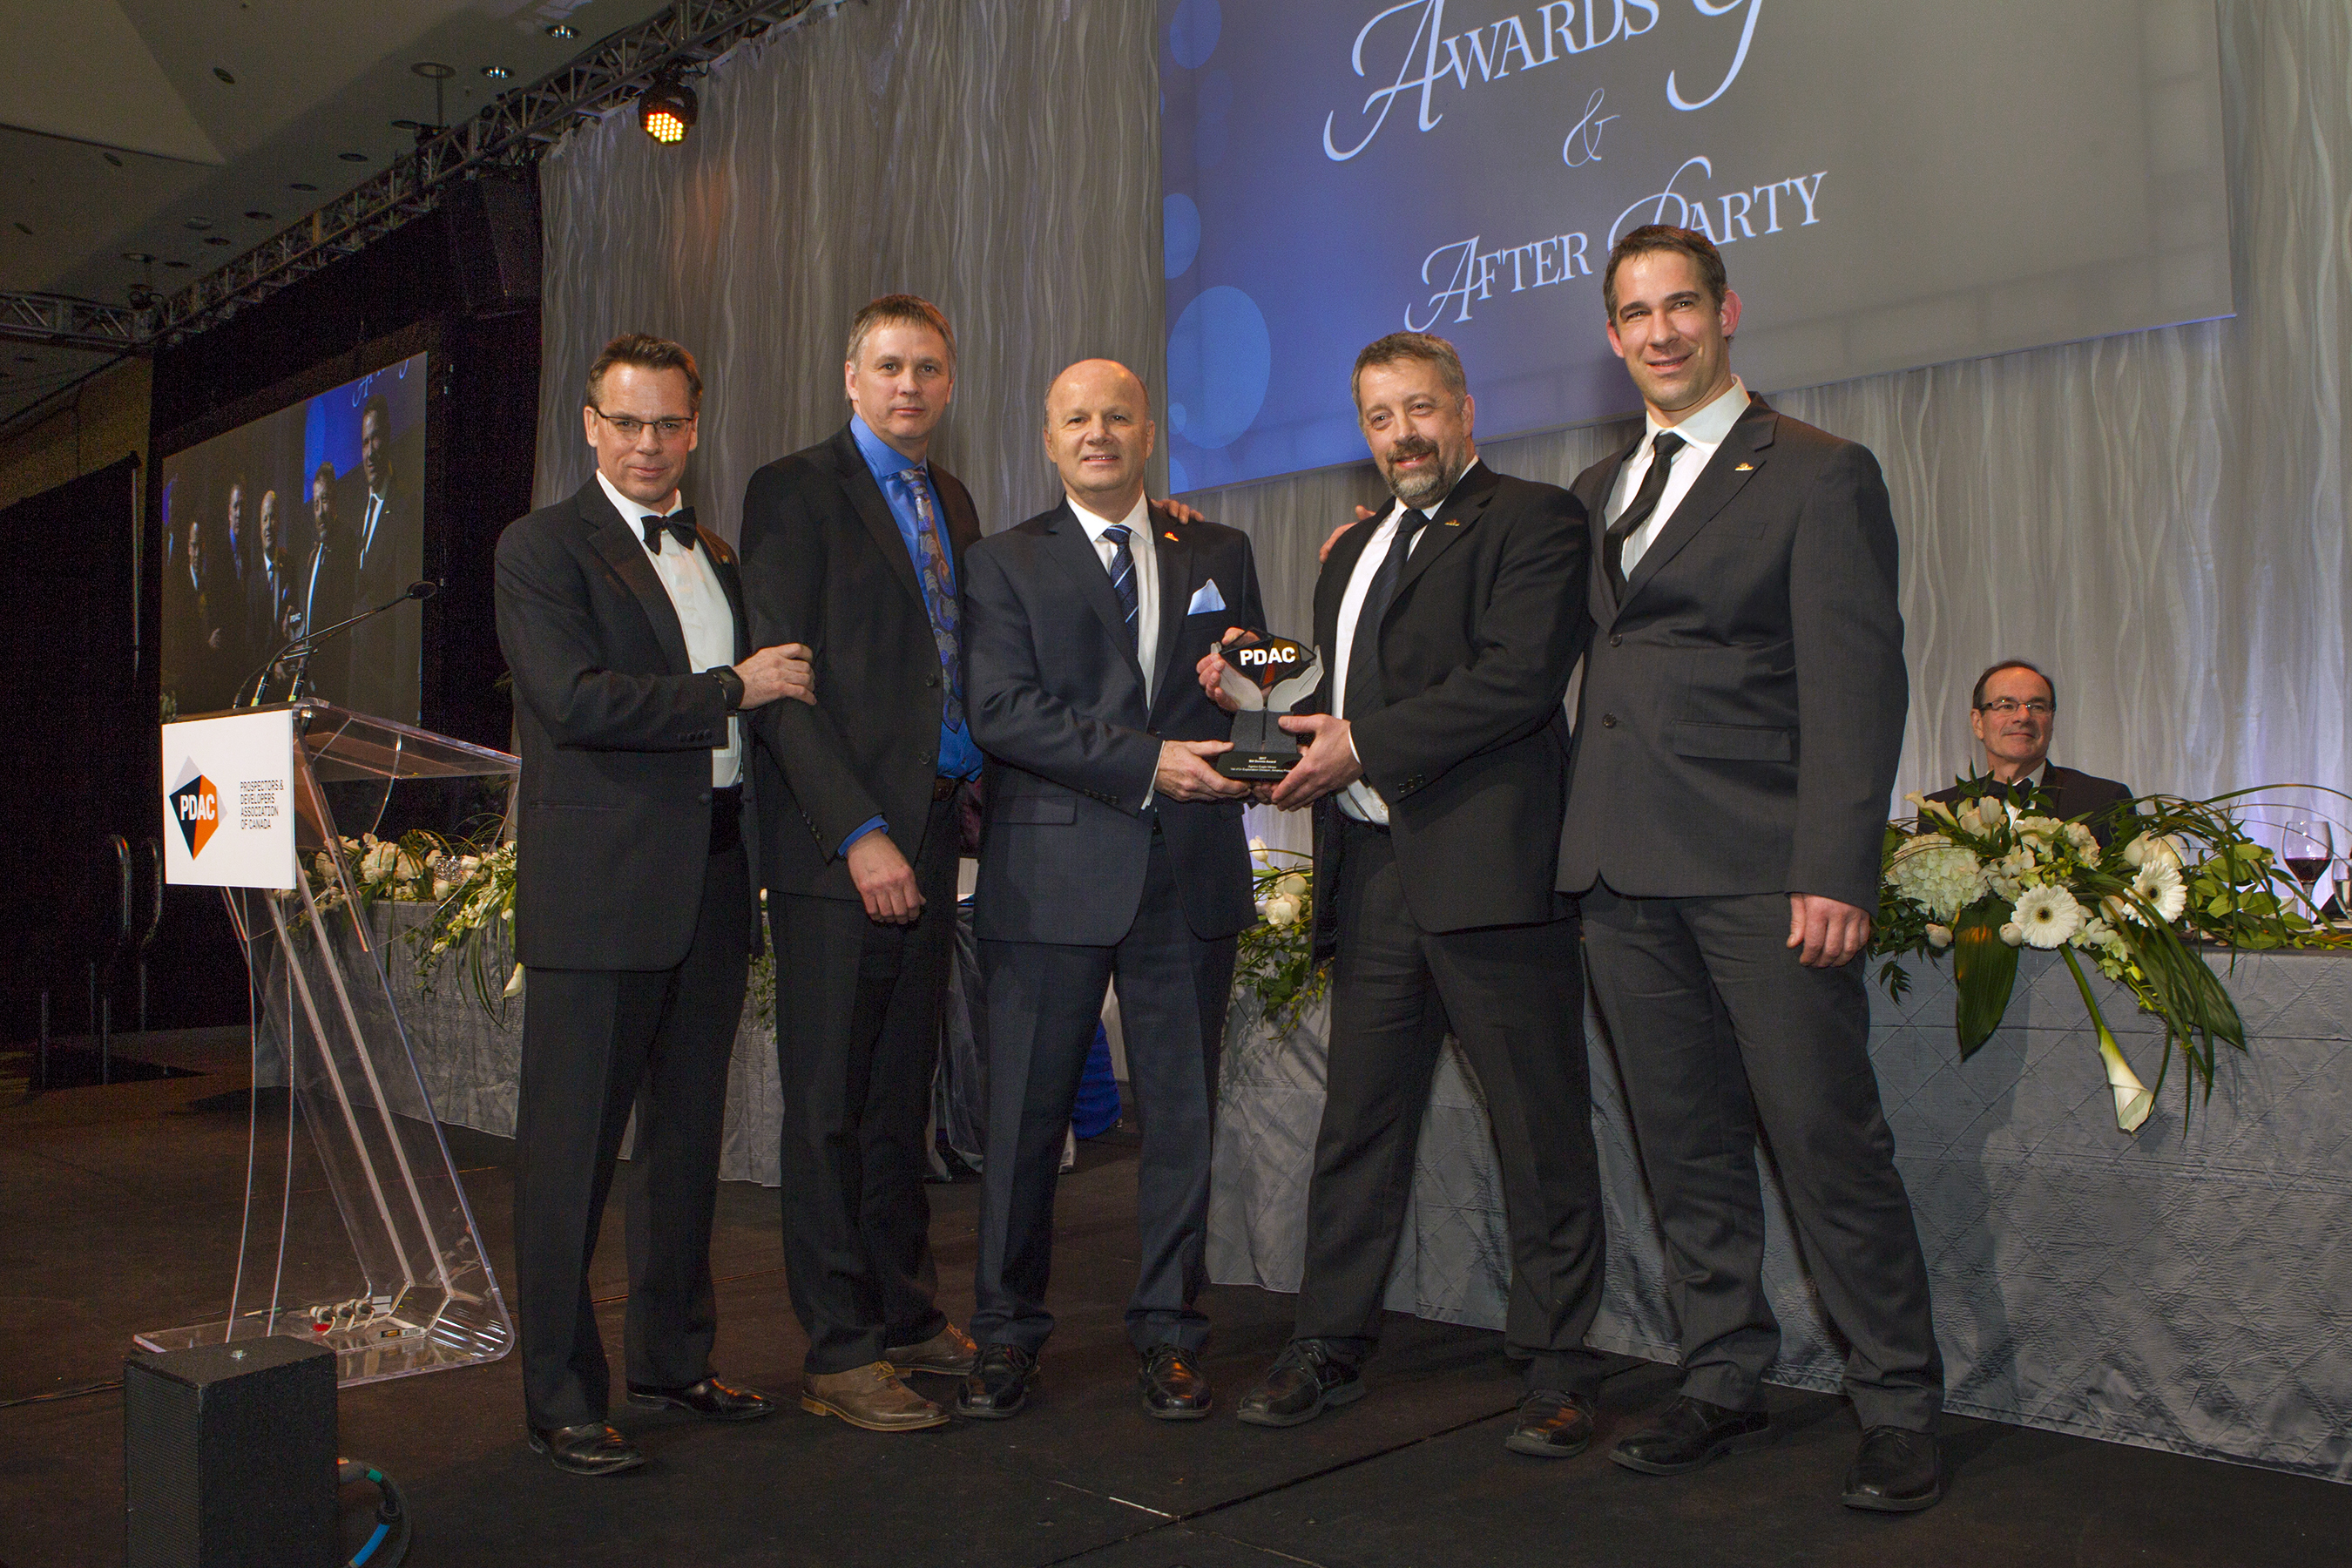 Bill Dennis Award recipients, Val d'Or Exploration Division, Agnico Eagle Mines Limited & Glenn Mullan, PDAC President